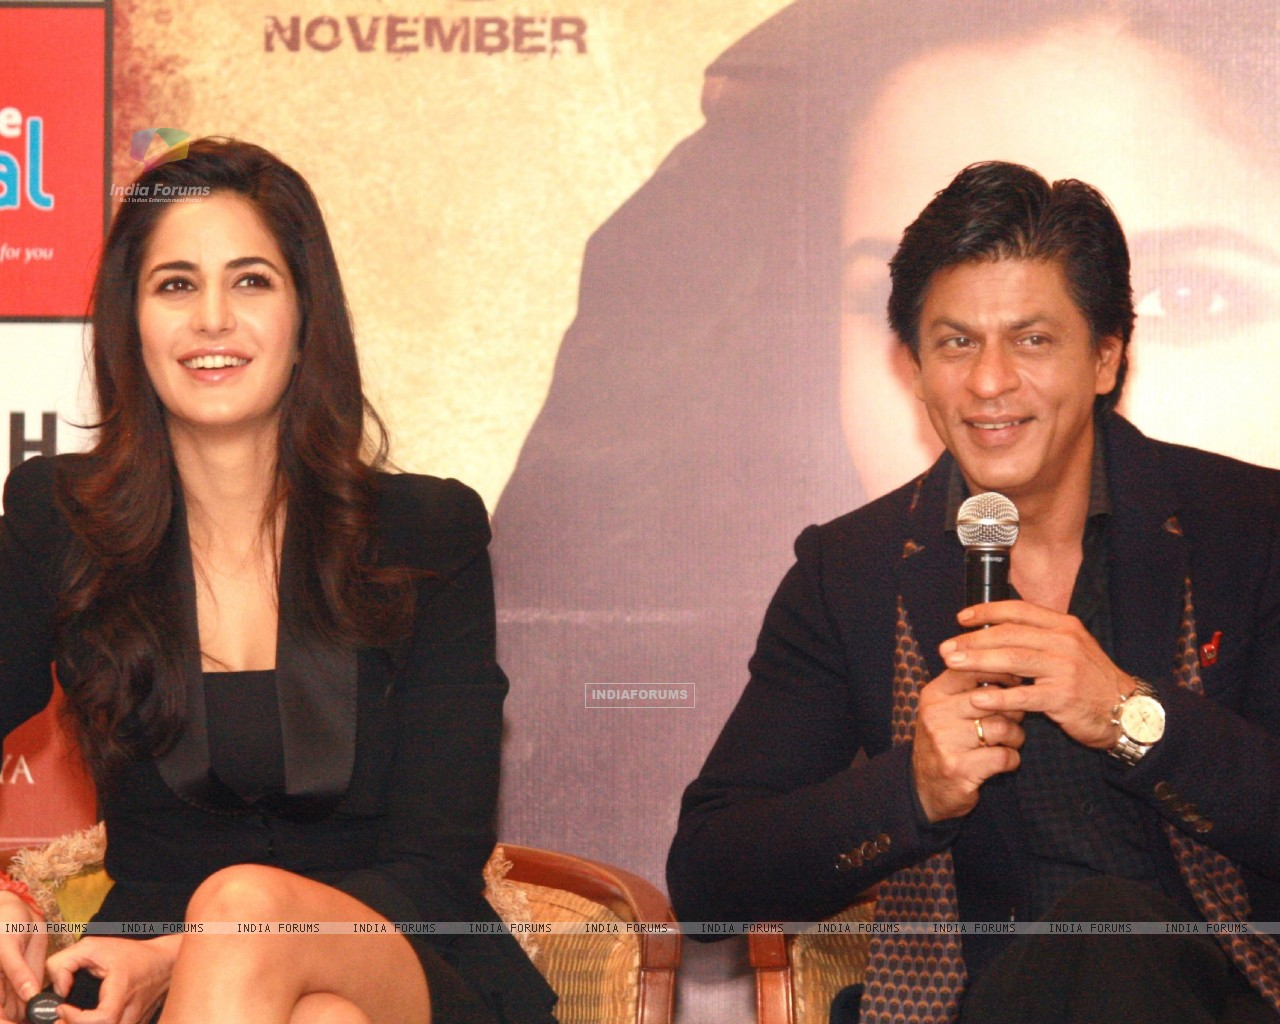 Shahrukh Khan and Katrina Kaif at a press conference for the film Jab Tak Hai Jaan (238942) size:1280x1024